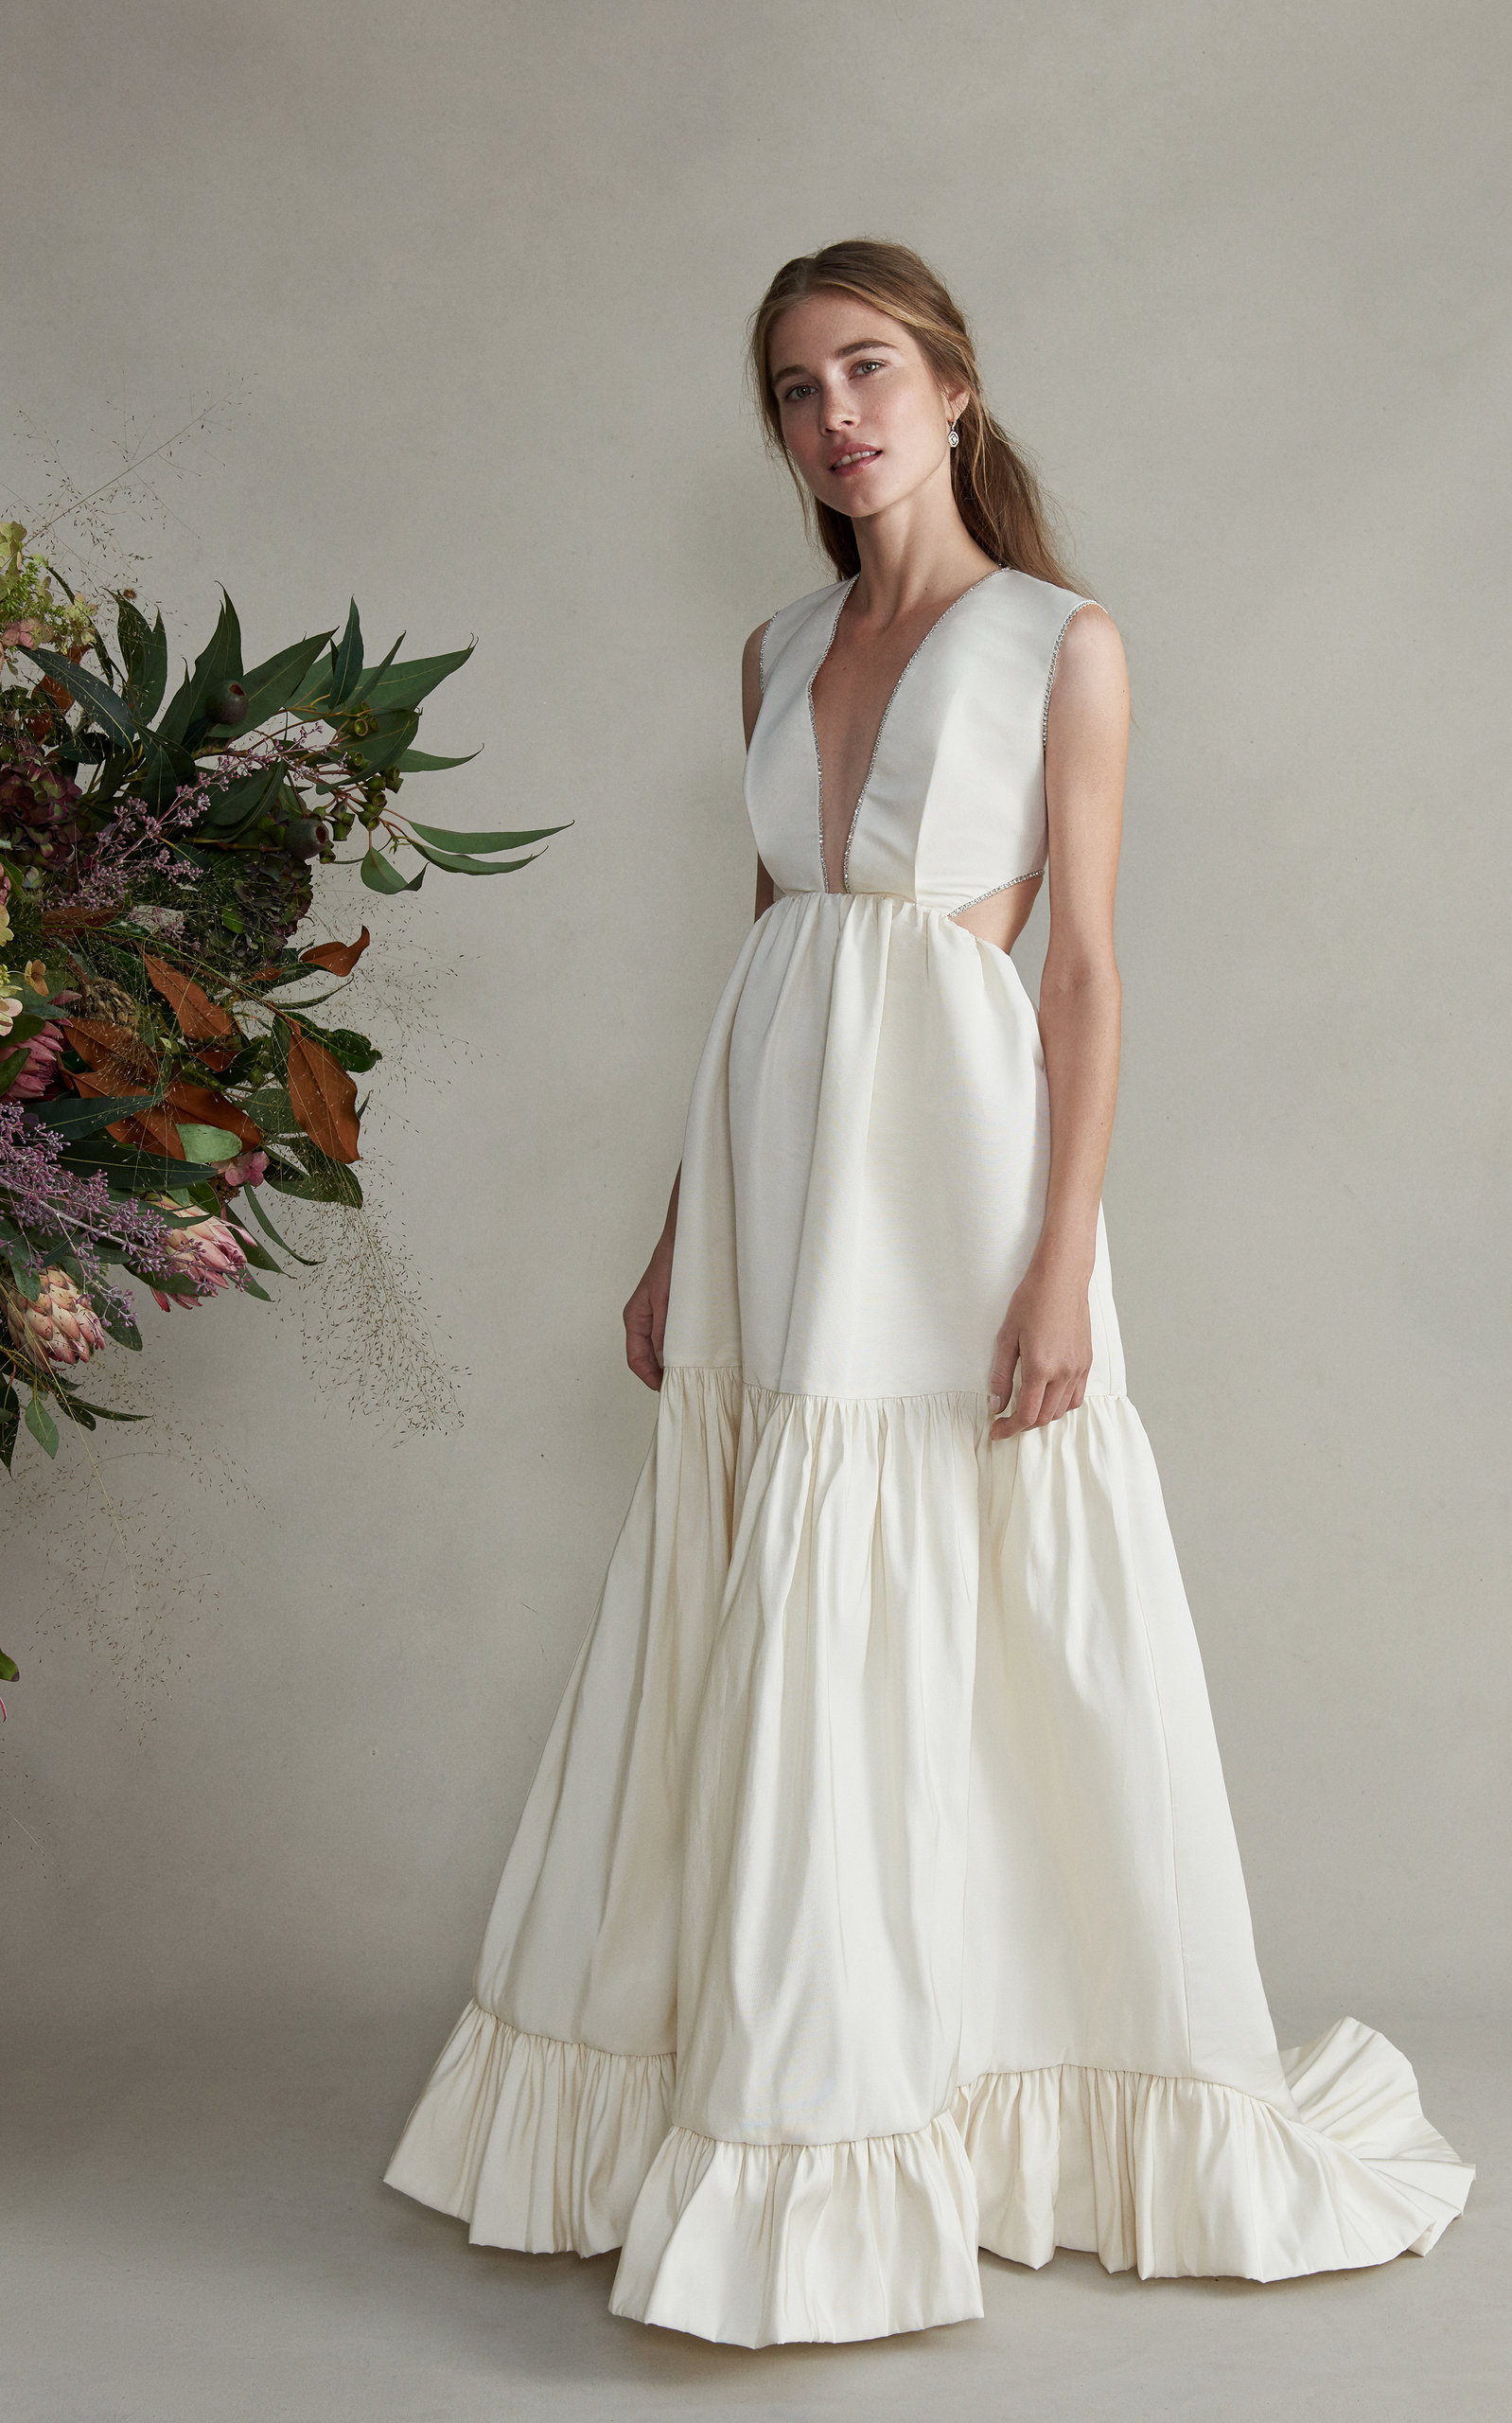 MARKARIAN Guinevere Sleeveless Cut Out Silk Gown in White